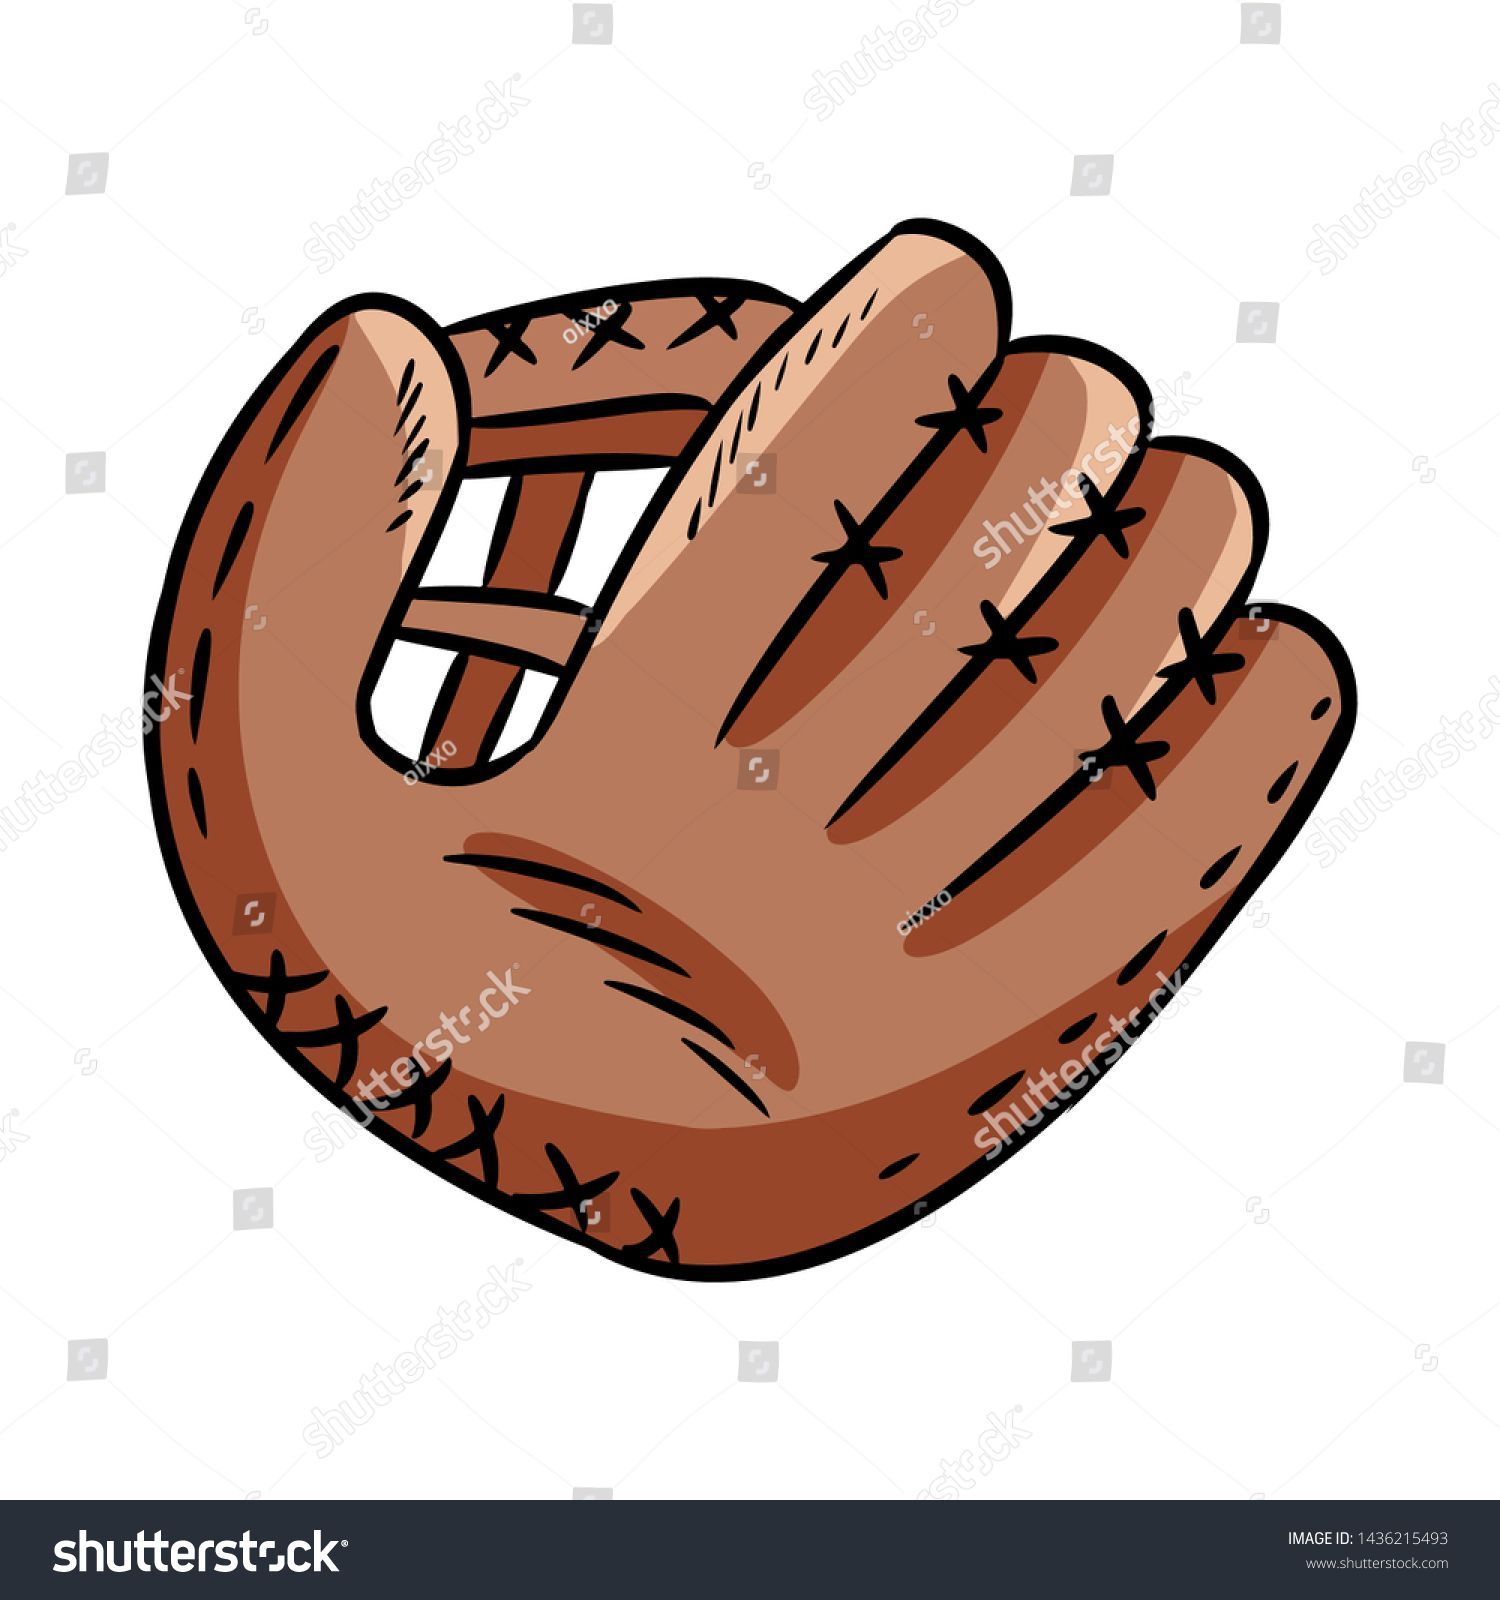 Hand Drawn Doodle Sketch Of Baseball Glove Cartoon Style Drawing For Posters Decoration And Print Ad Cartoon Style Drawing Doodle Sketch How To Draw Hands